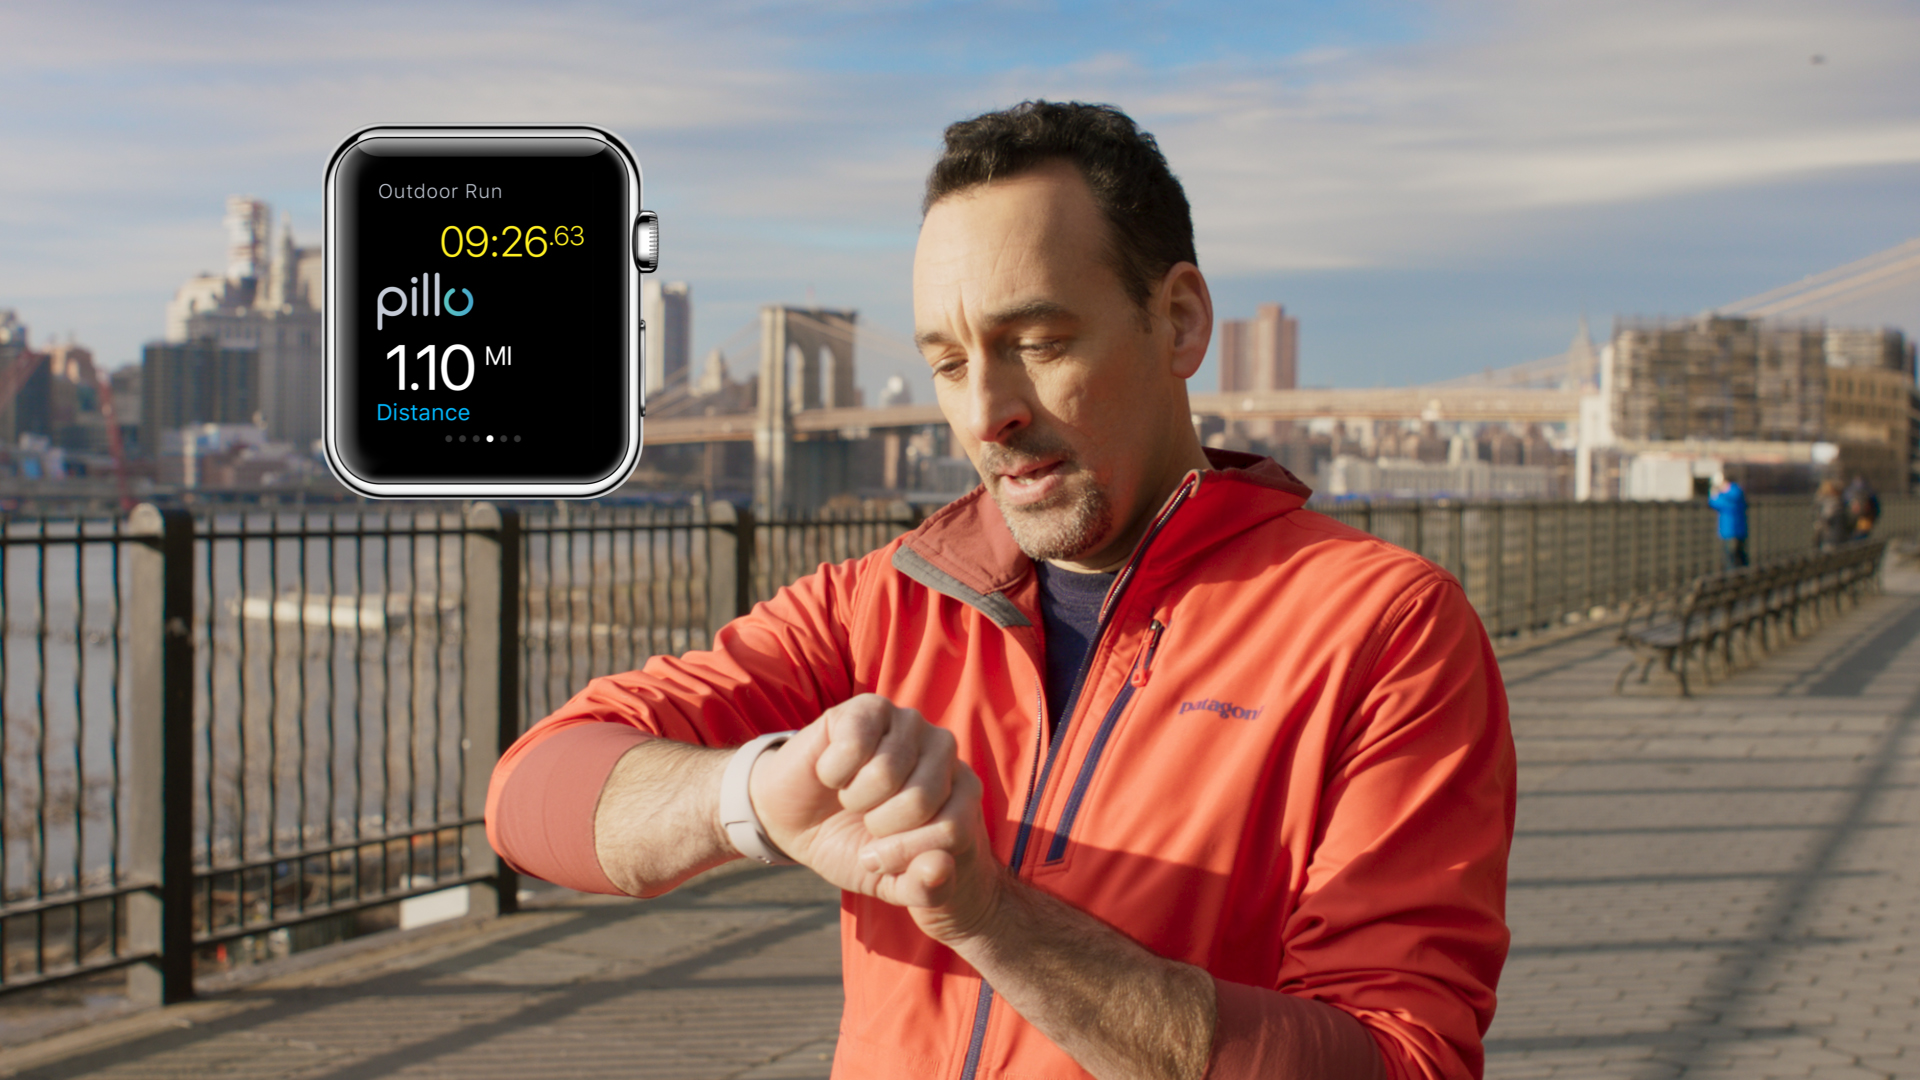 Connects with Wearables_Video Frame.jpg